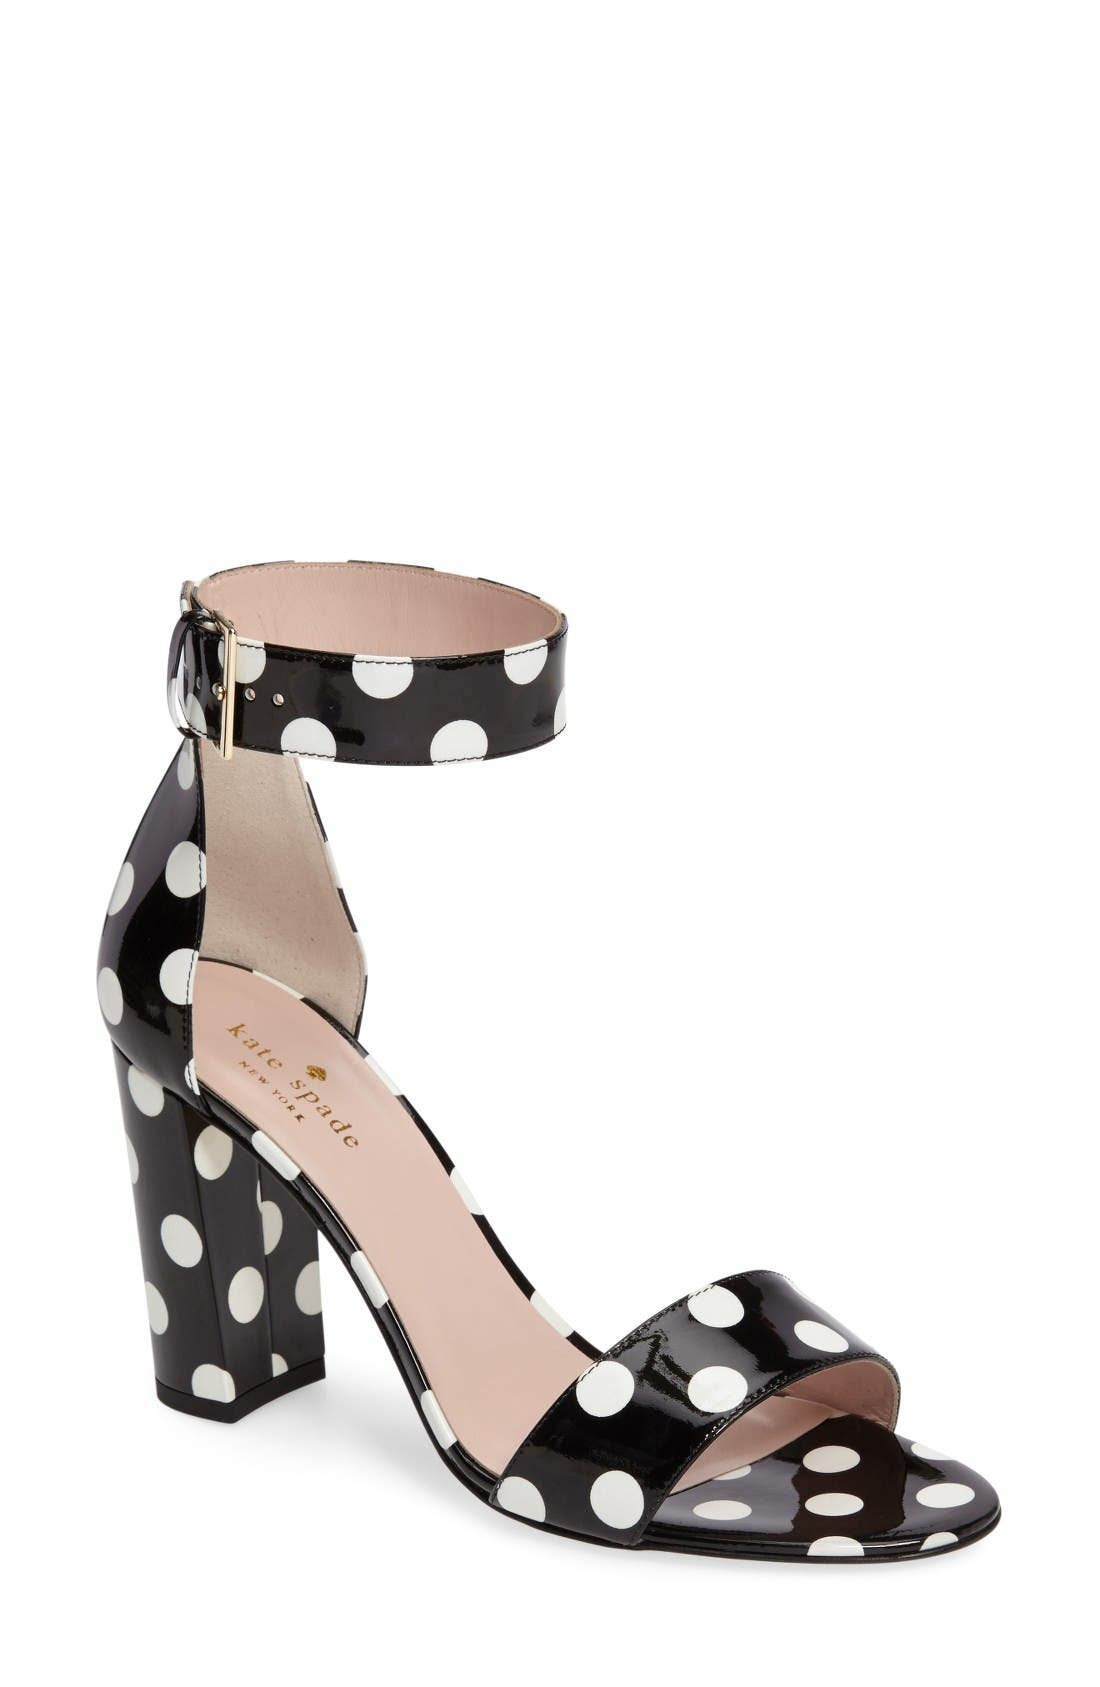 Alternate Image 1 Selected - kate spade new york idabelle too sandal (Women)